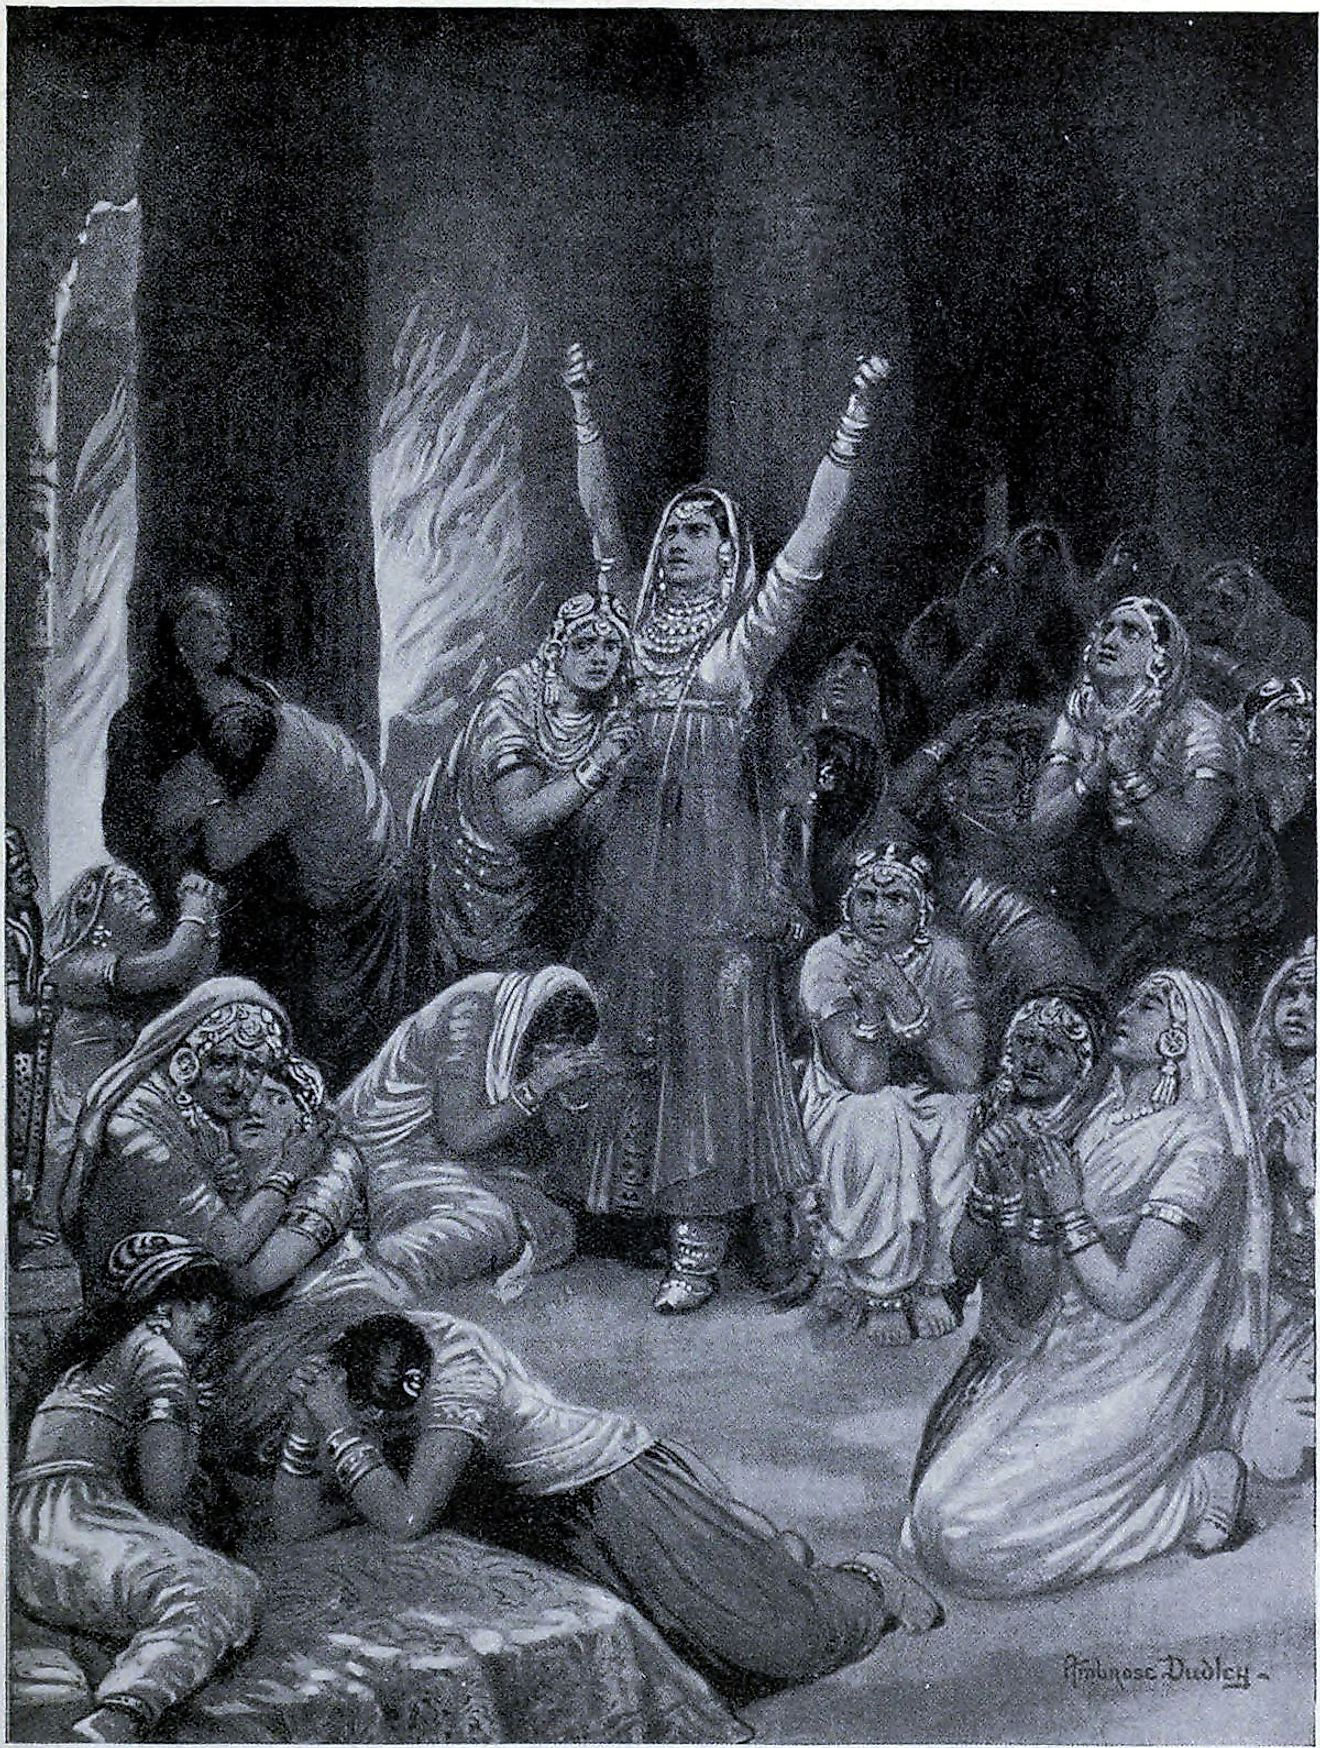 The Rajput ceremony of Jauhar, 1567, as depicted by Ambrose Dudley in Hutchinsons History of the Nations, c.1910. Image credit: Ambrose Dudley  (1867–1951)  United States public domain